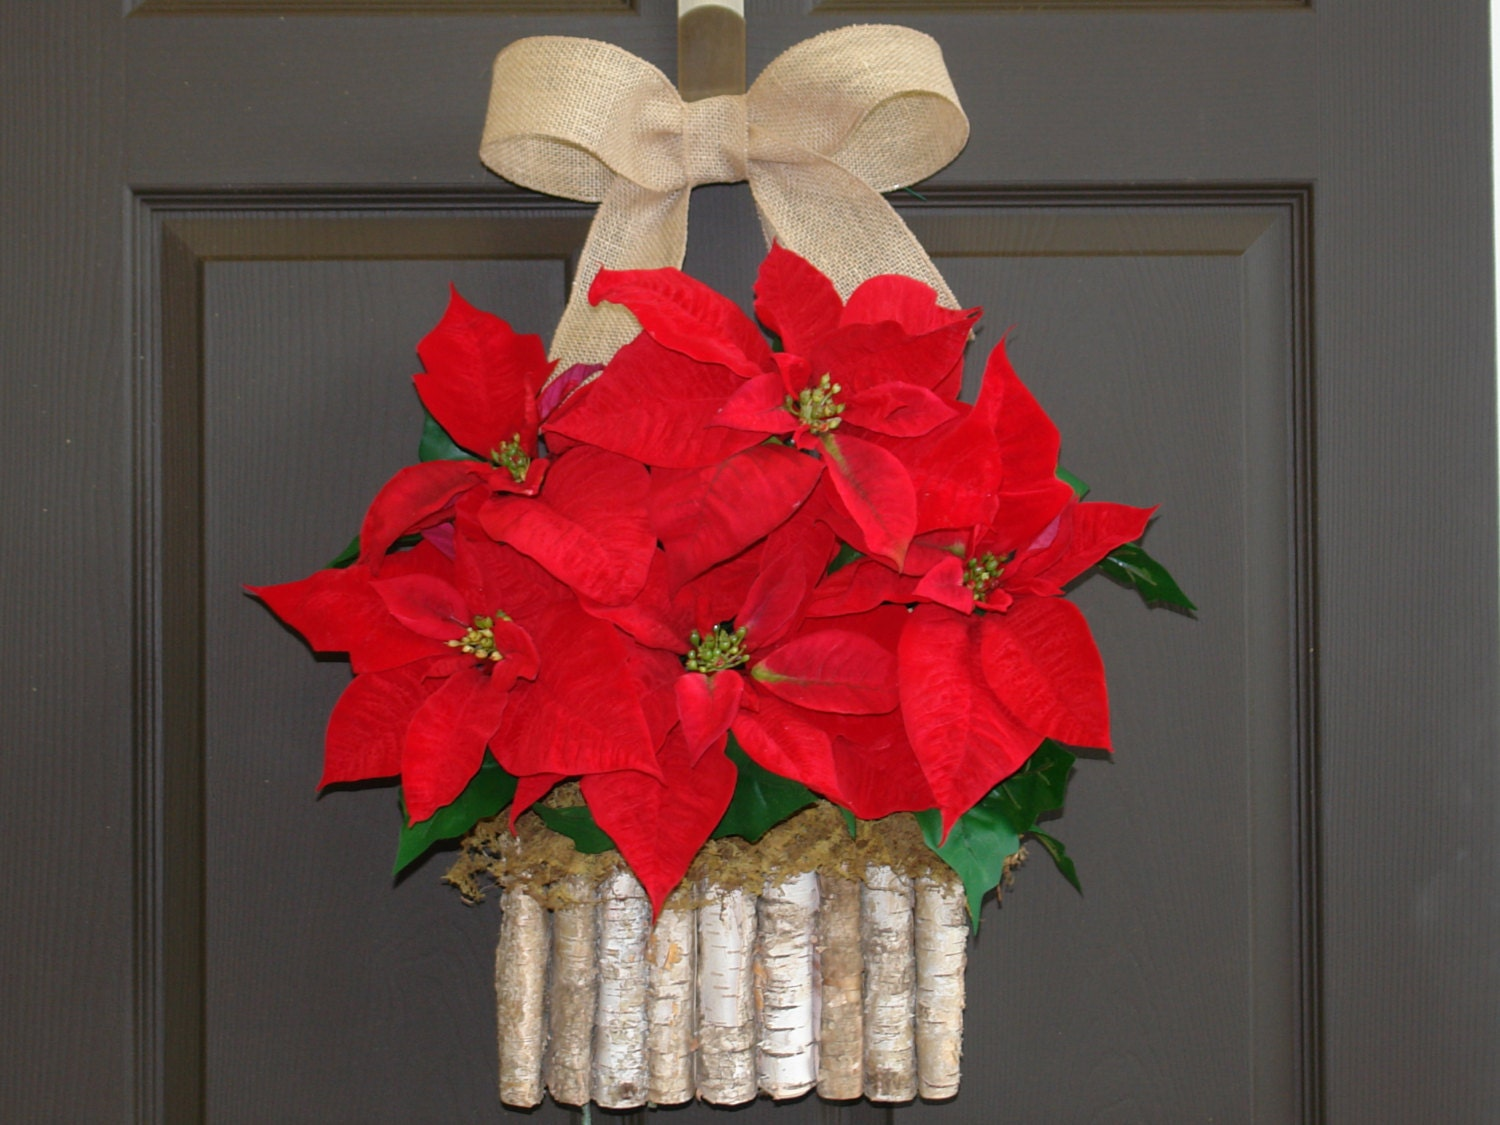 Christmas wreath Holiday Poinsettia wreath decorations front door decor birch bark wreath Christmas wreaths